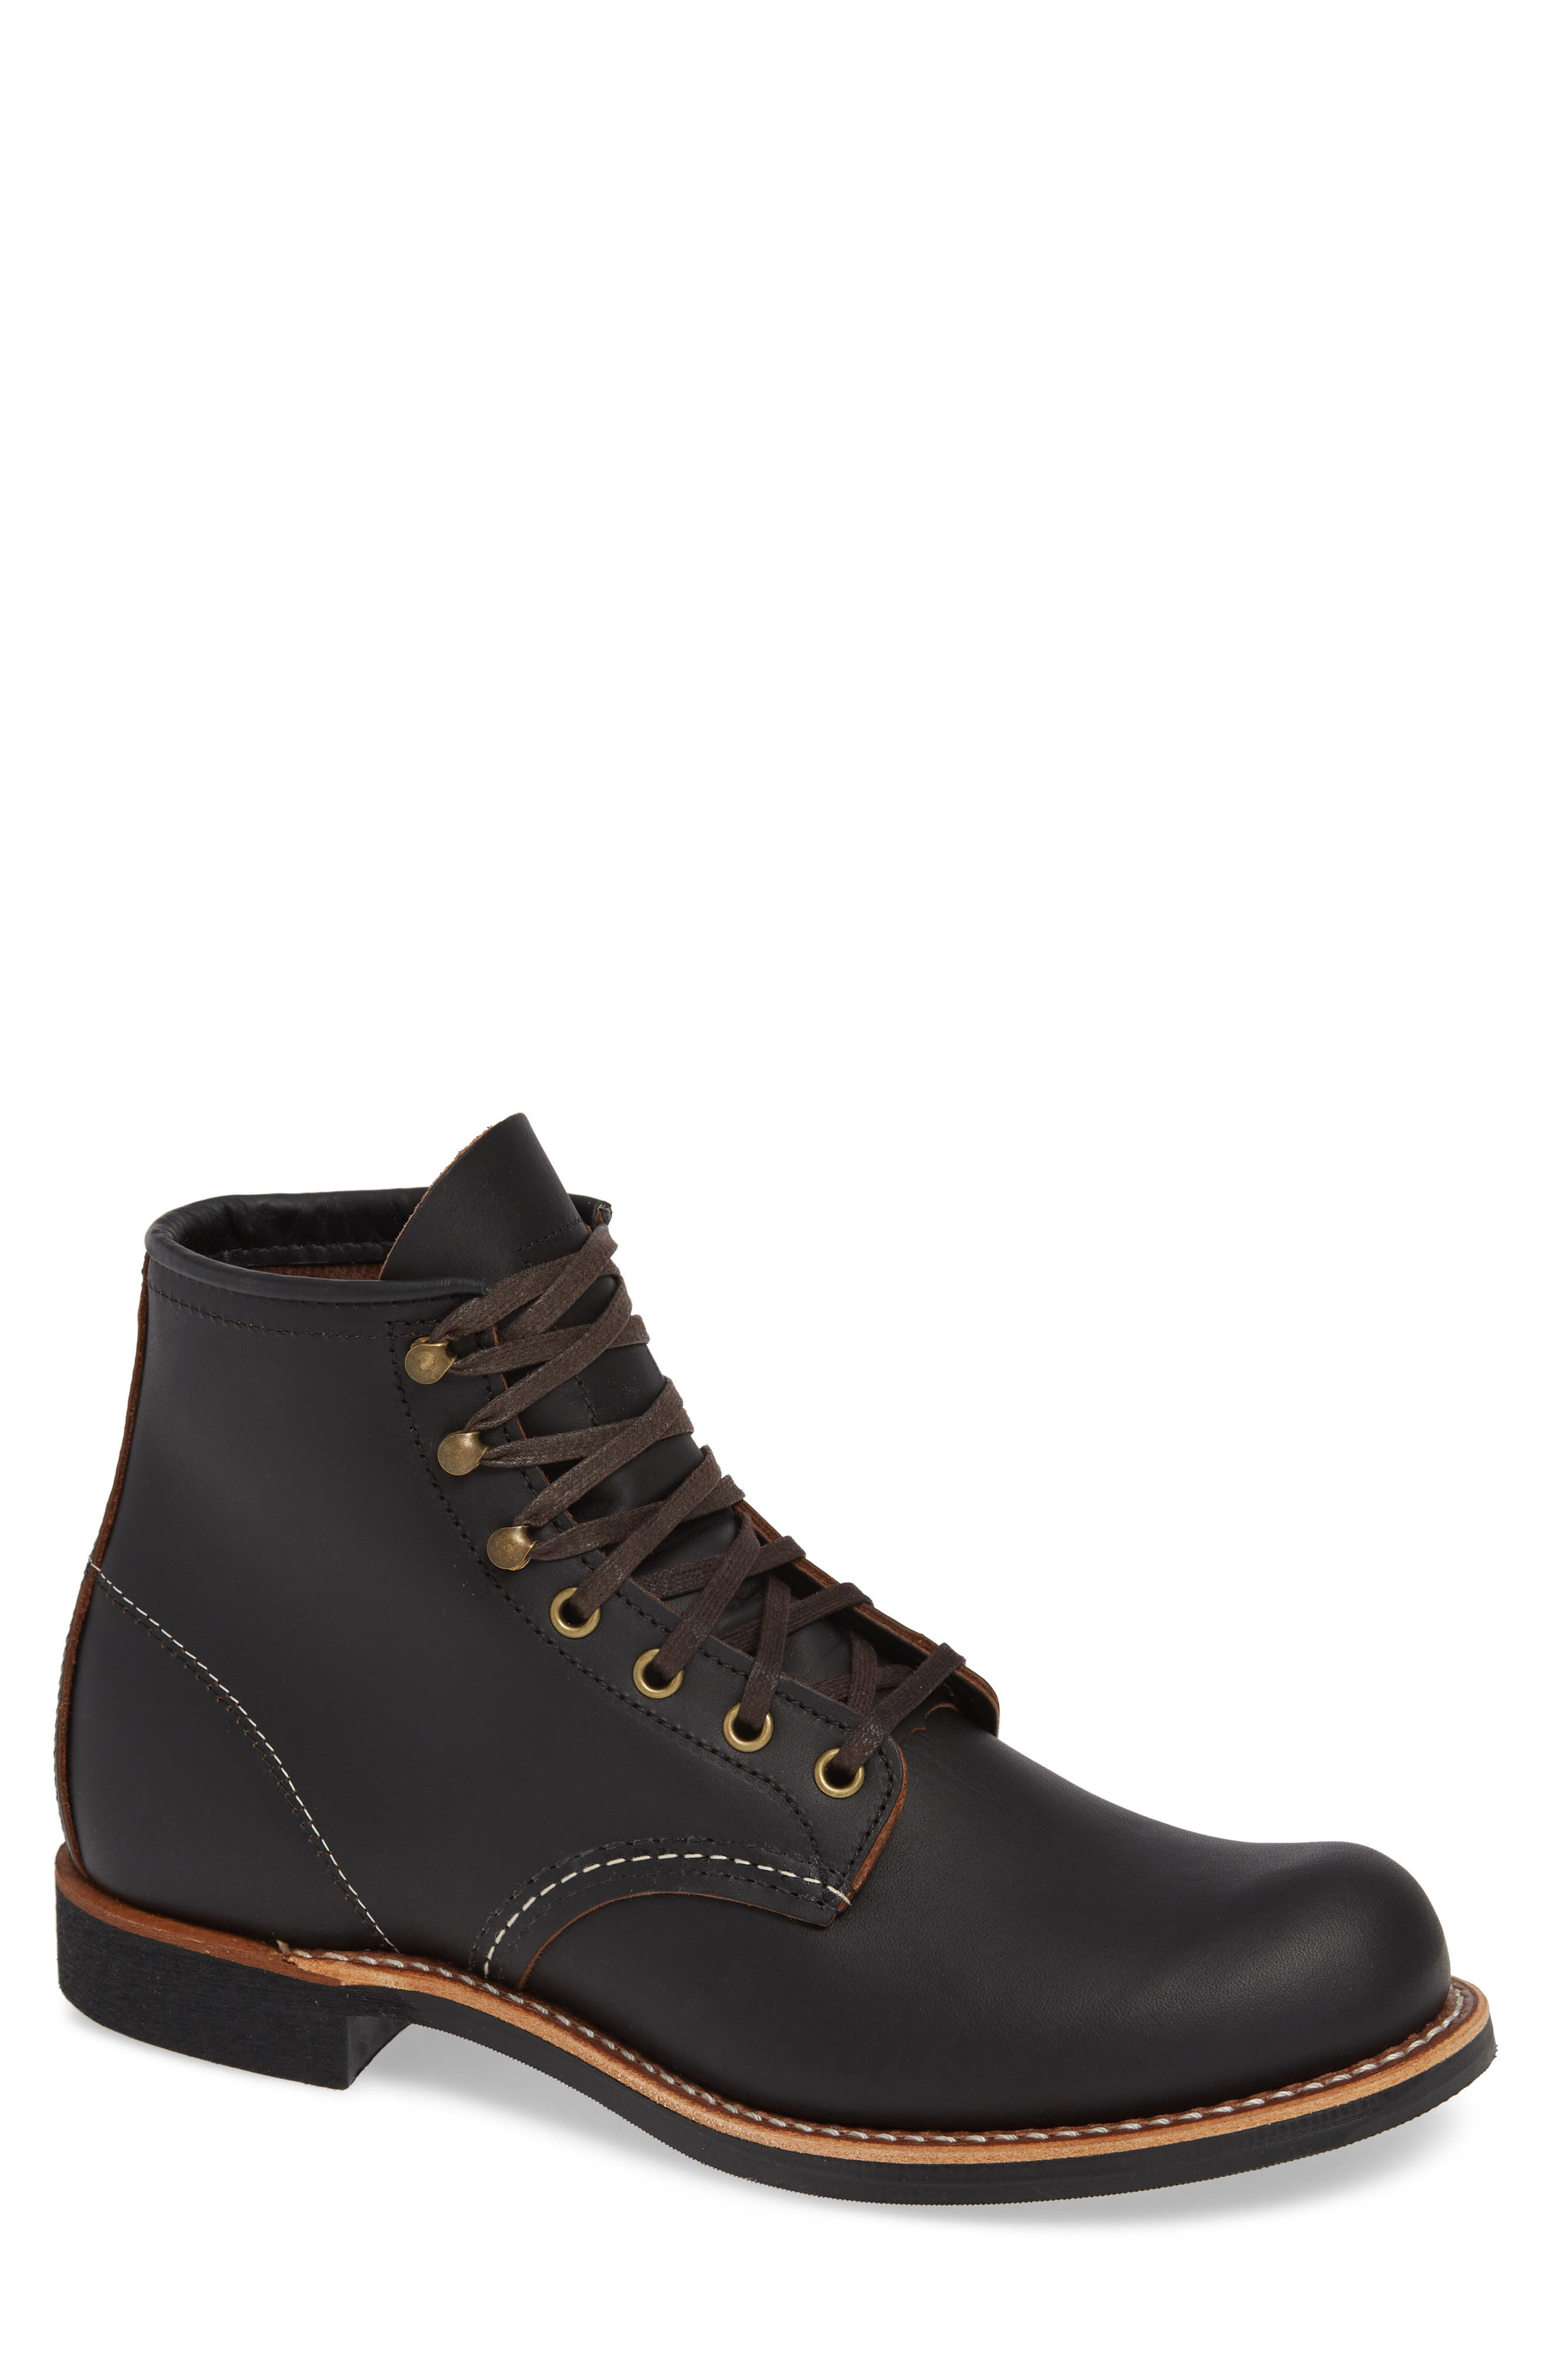 Red Wing Blacksmith Boot, Black